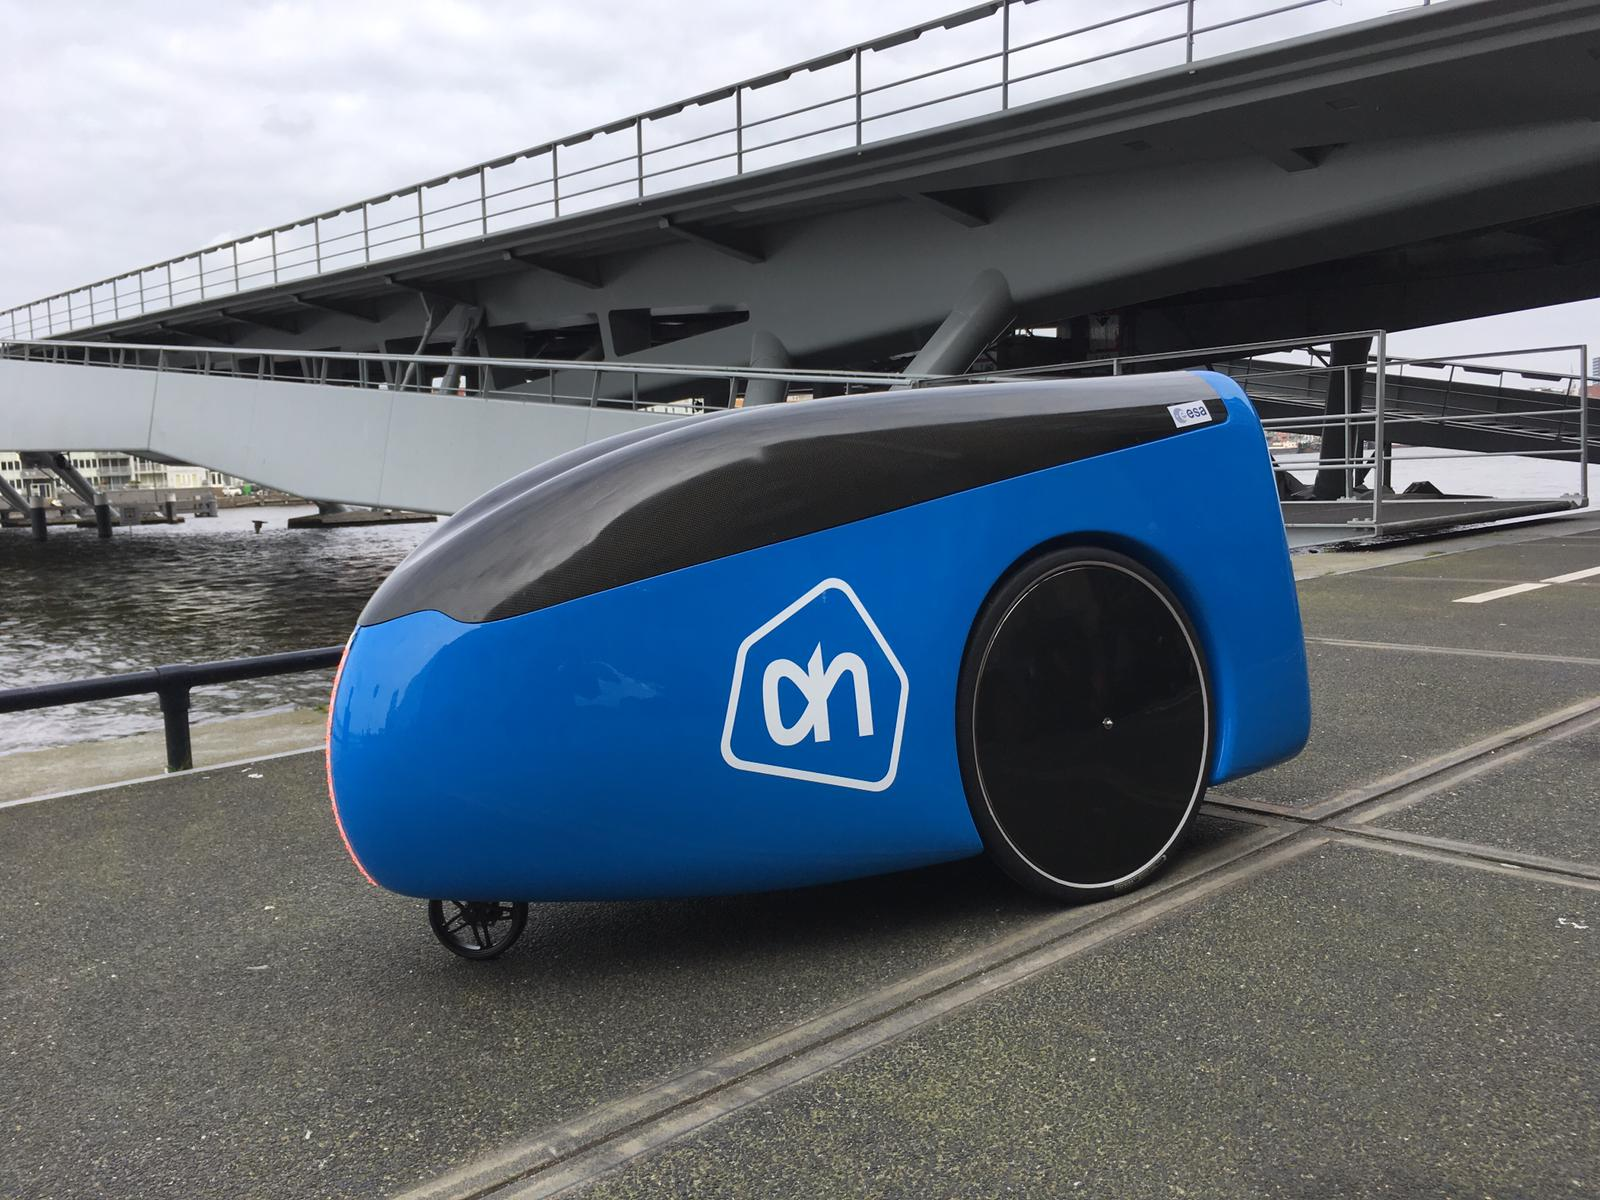 The Dutch are about to test a delivery robot. The vehicle price may come as a surprise.